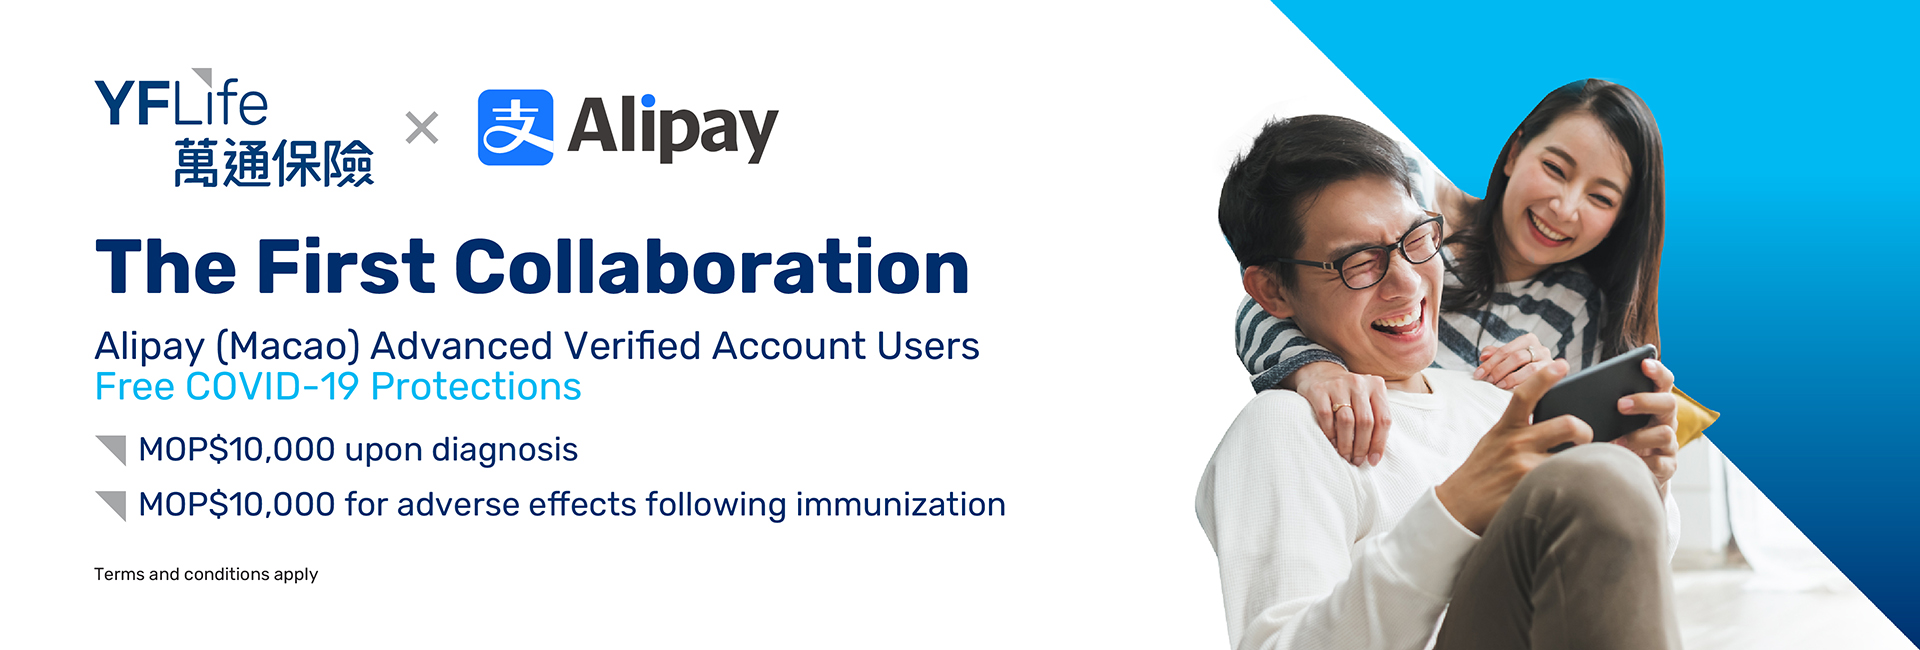 Alipay (Macao) First Collaboration